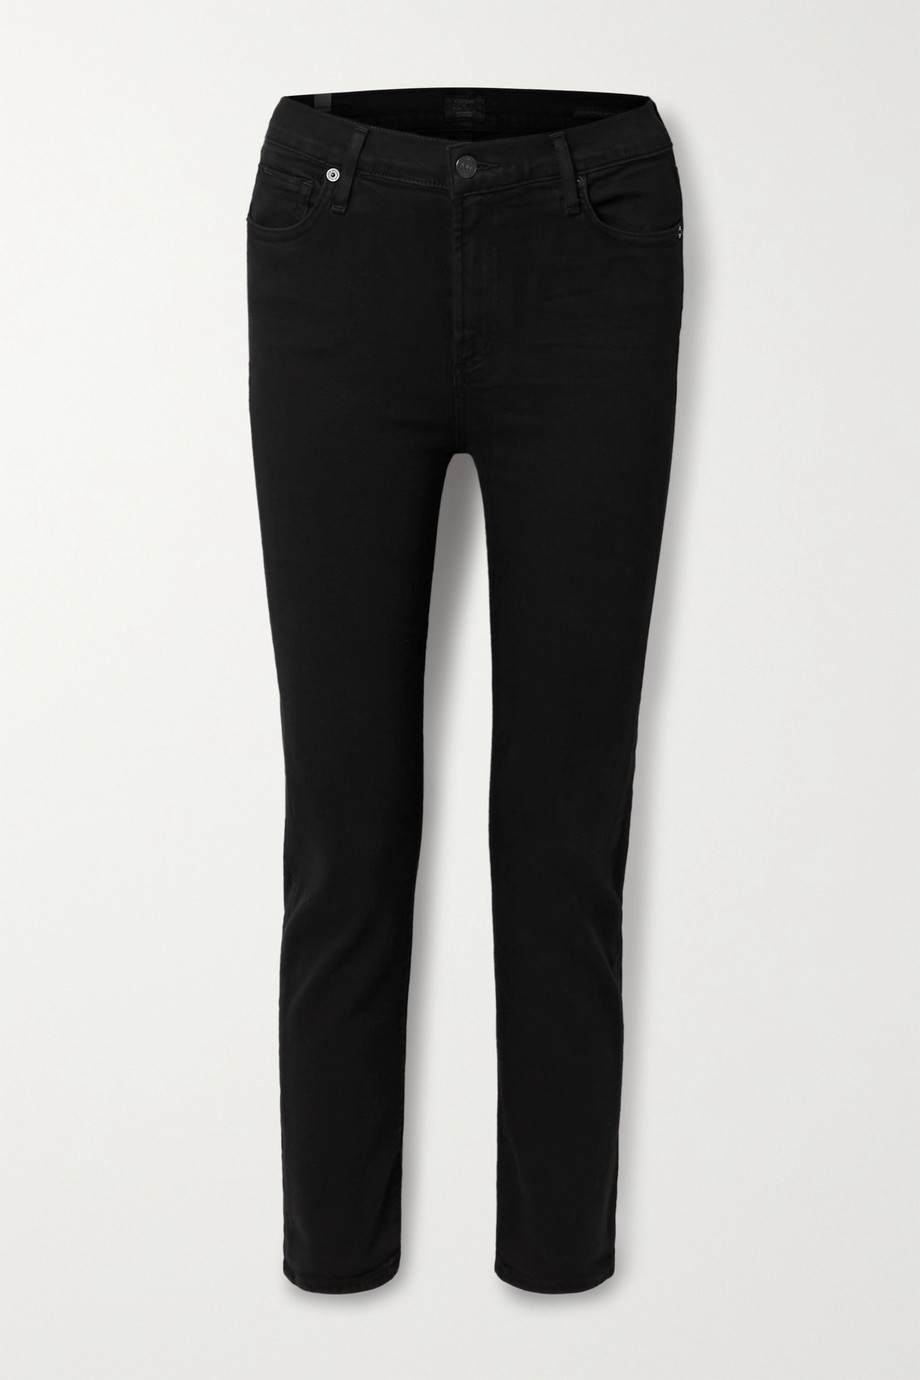 Citizens of Humanity Harlow cropped mid-rise skinny jeans